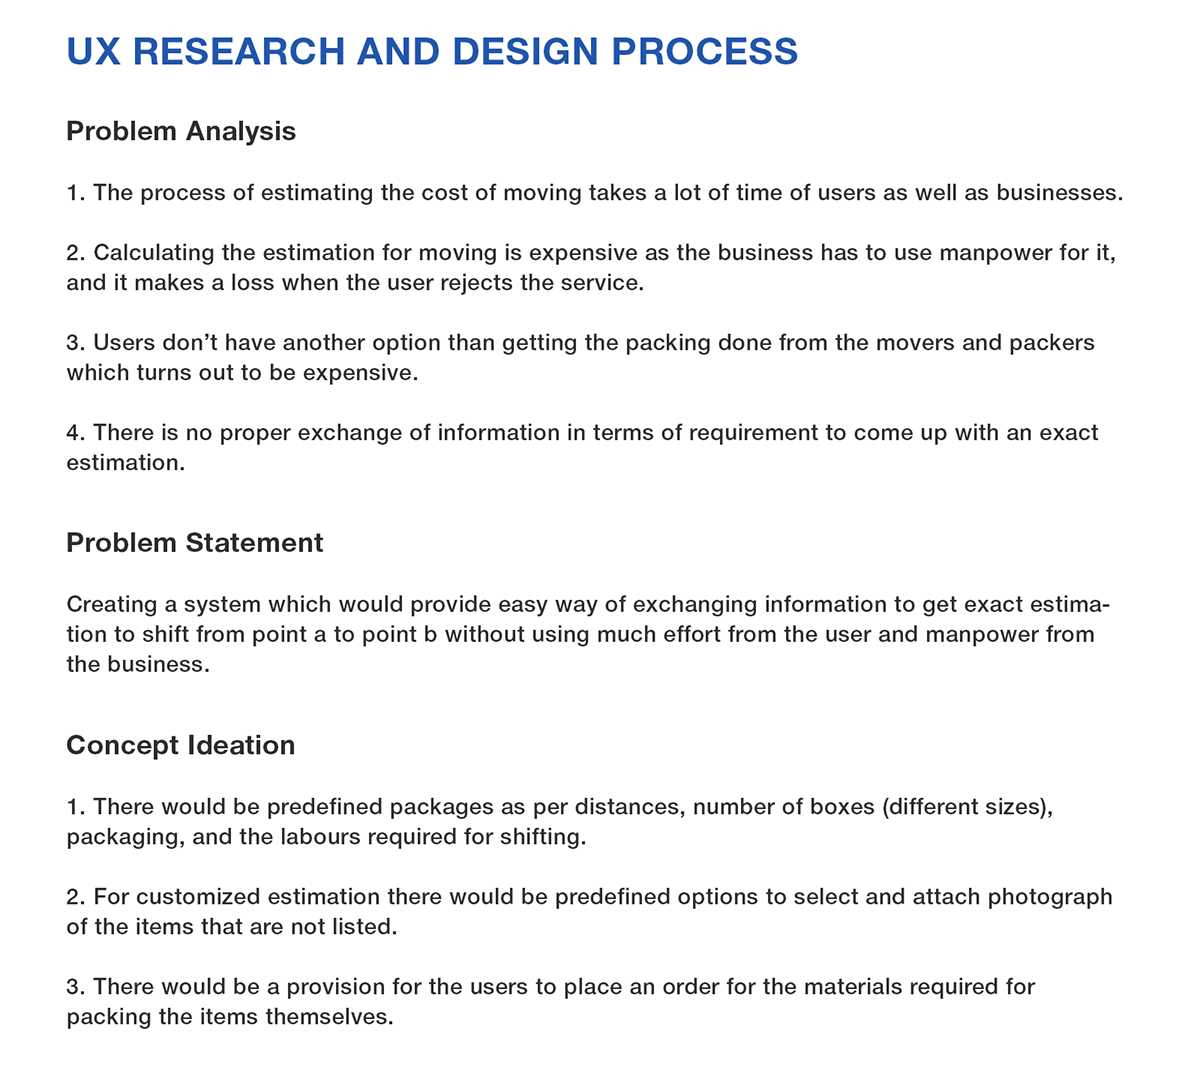 Ux research design for moverspackers app on behance hexwebz Gallery